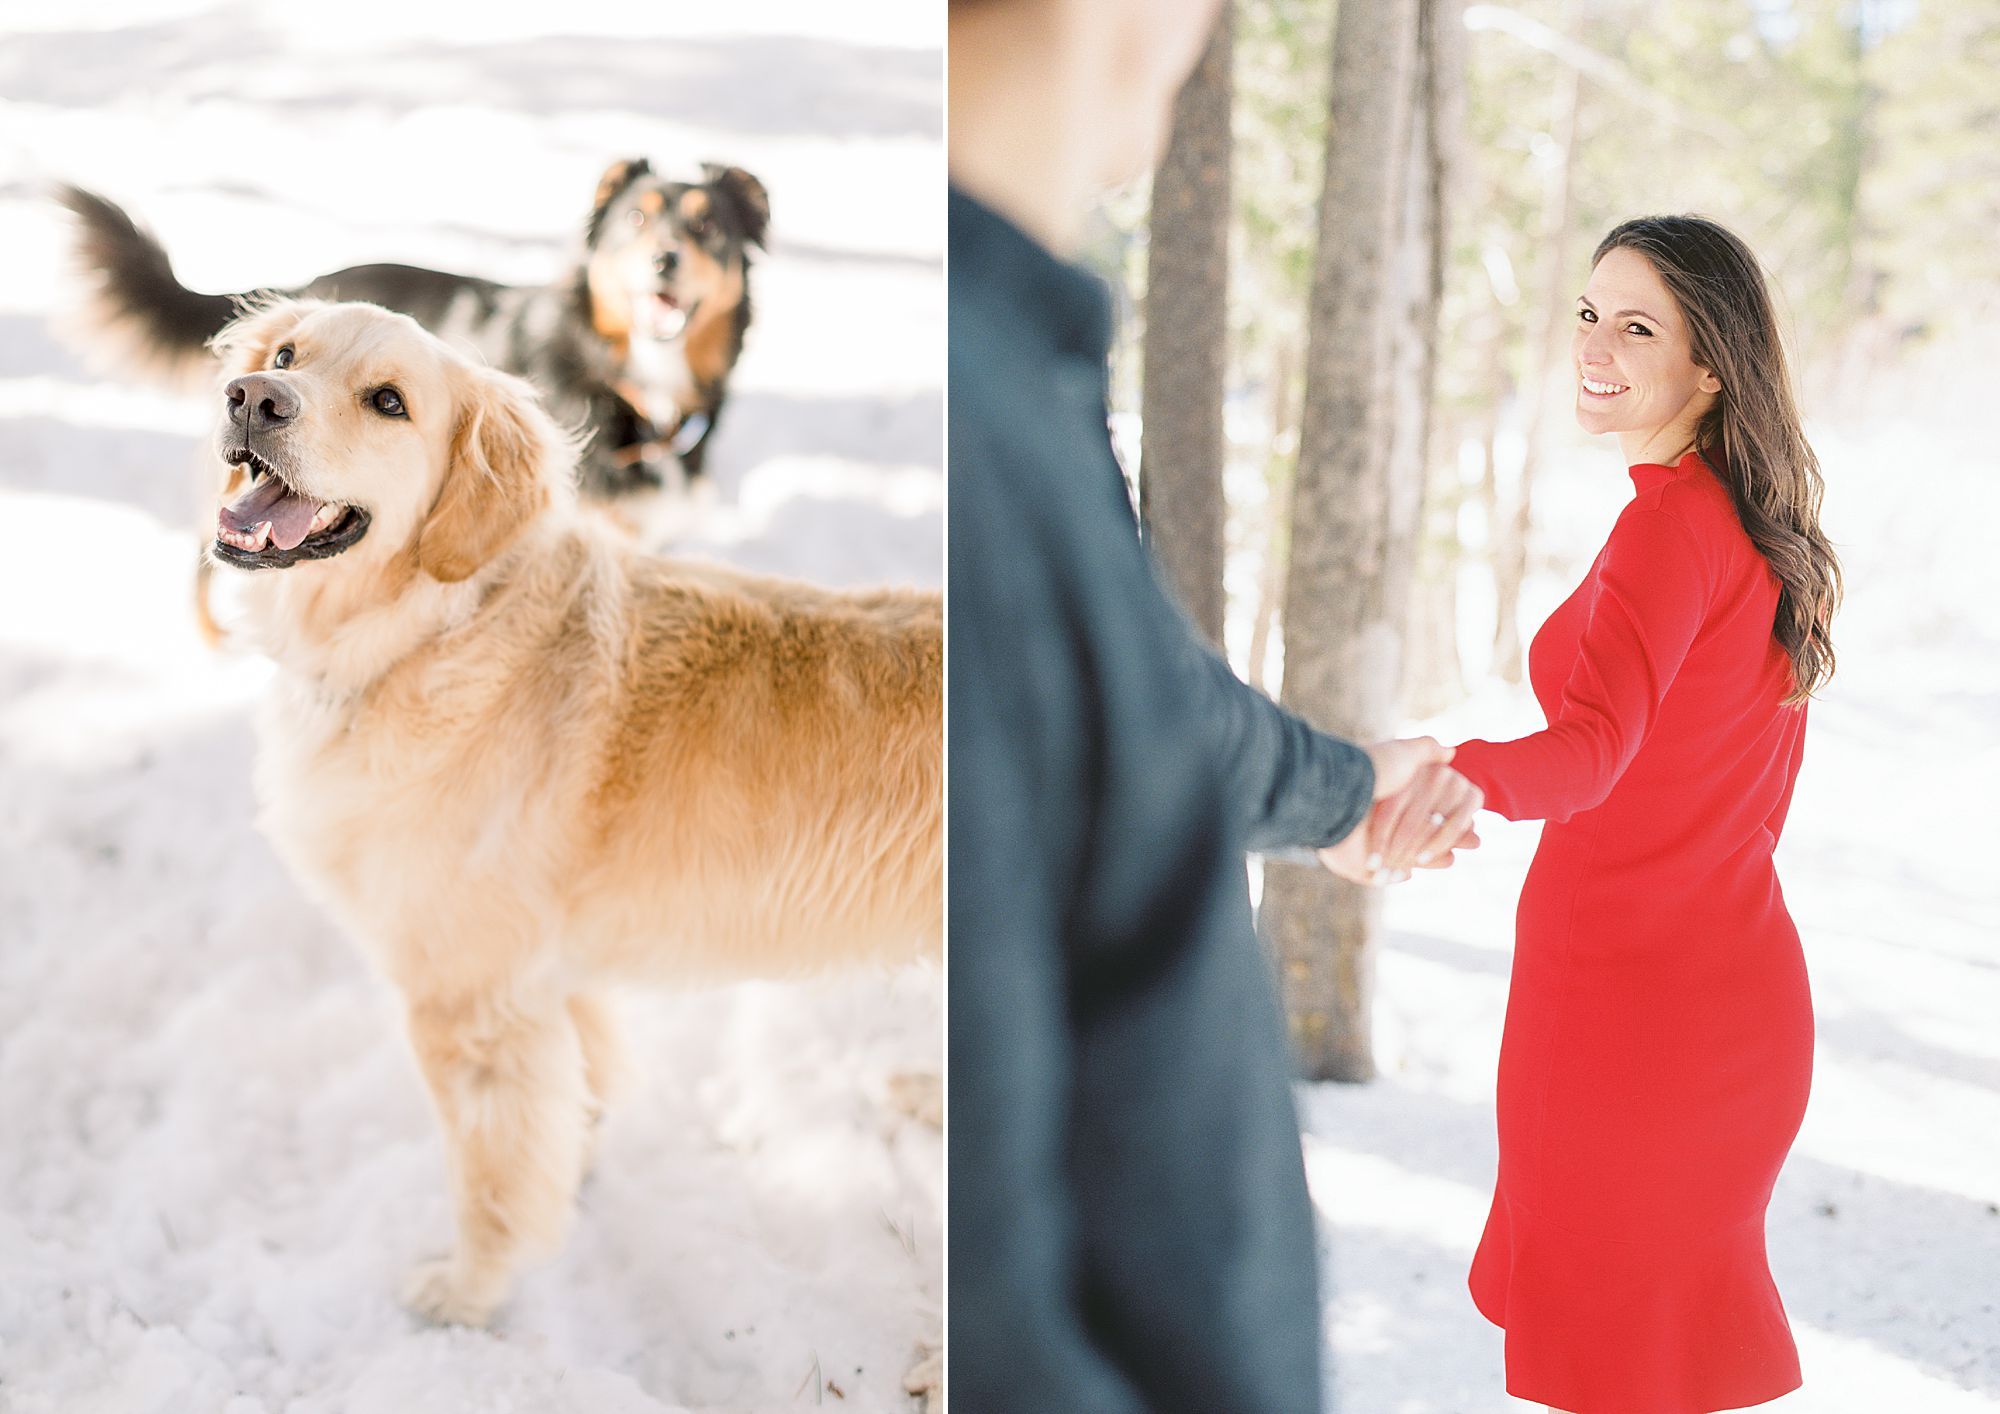 Snowy Tahoe Engagement Session - Alex and Kevin - Ashley Baumgartner - Tahoe Engagement Session - Tahoe Wedding Photographer - Tahoe Engagement Photos - Snow Engagement Photos_0031.jpg